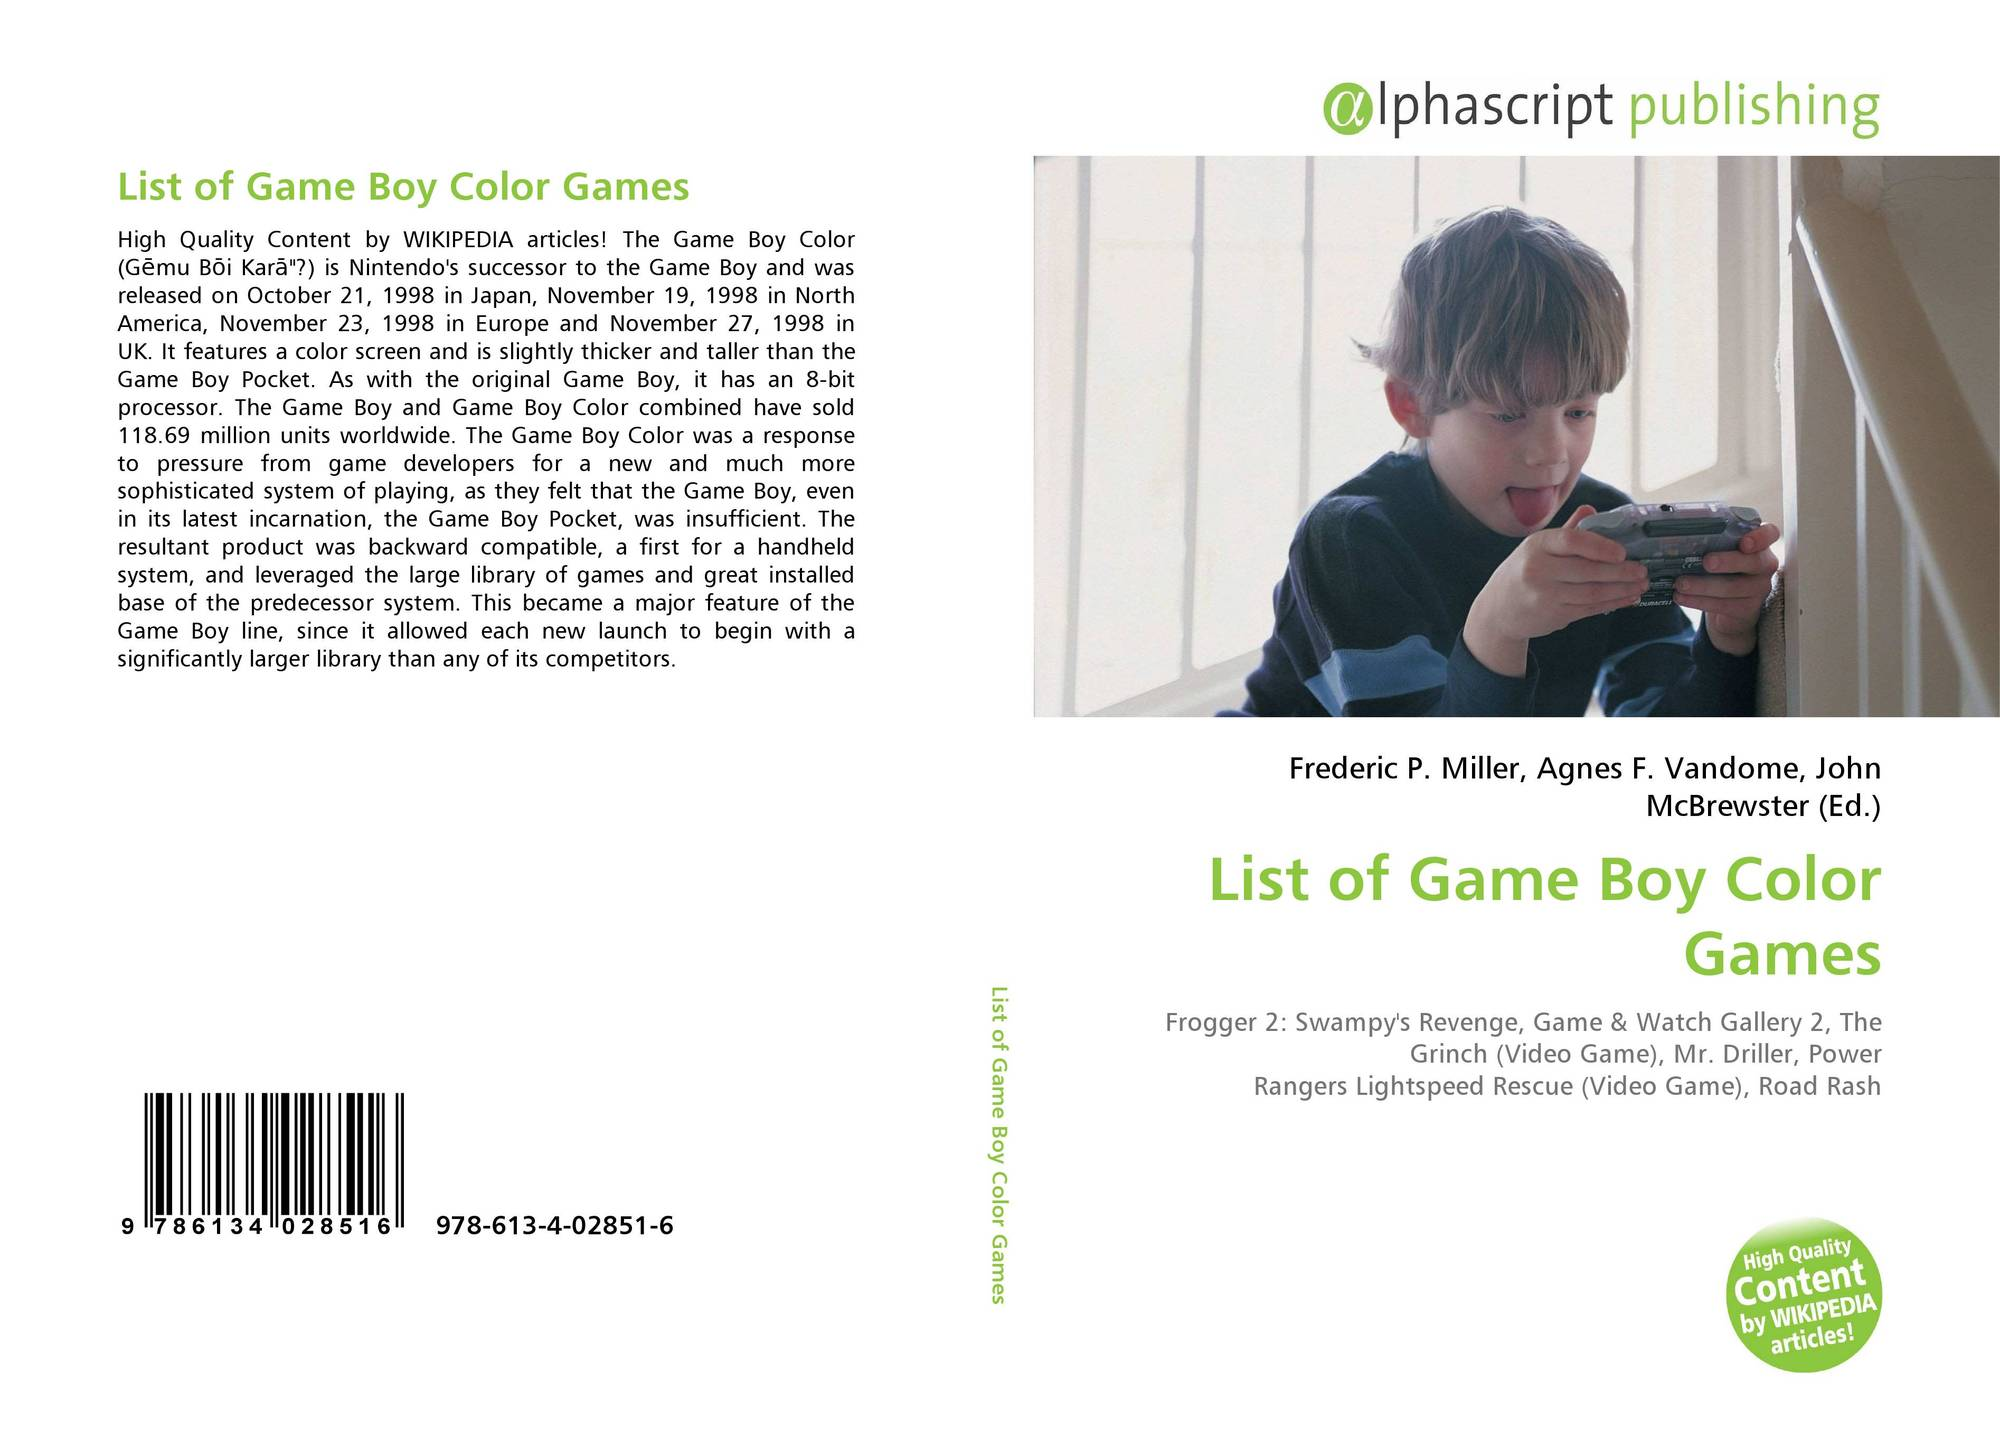 Game boy color list - Bookcover Of List Of Game Boy Color Games Omni Badge 9307e2201e5f762643a64561af3456be64a87707602f96b92ef18a9bbcada116